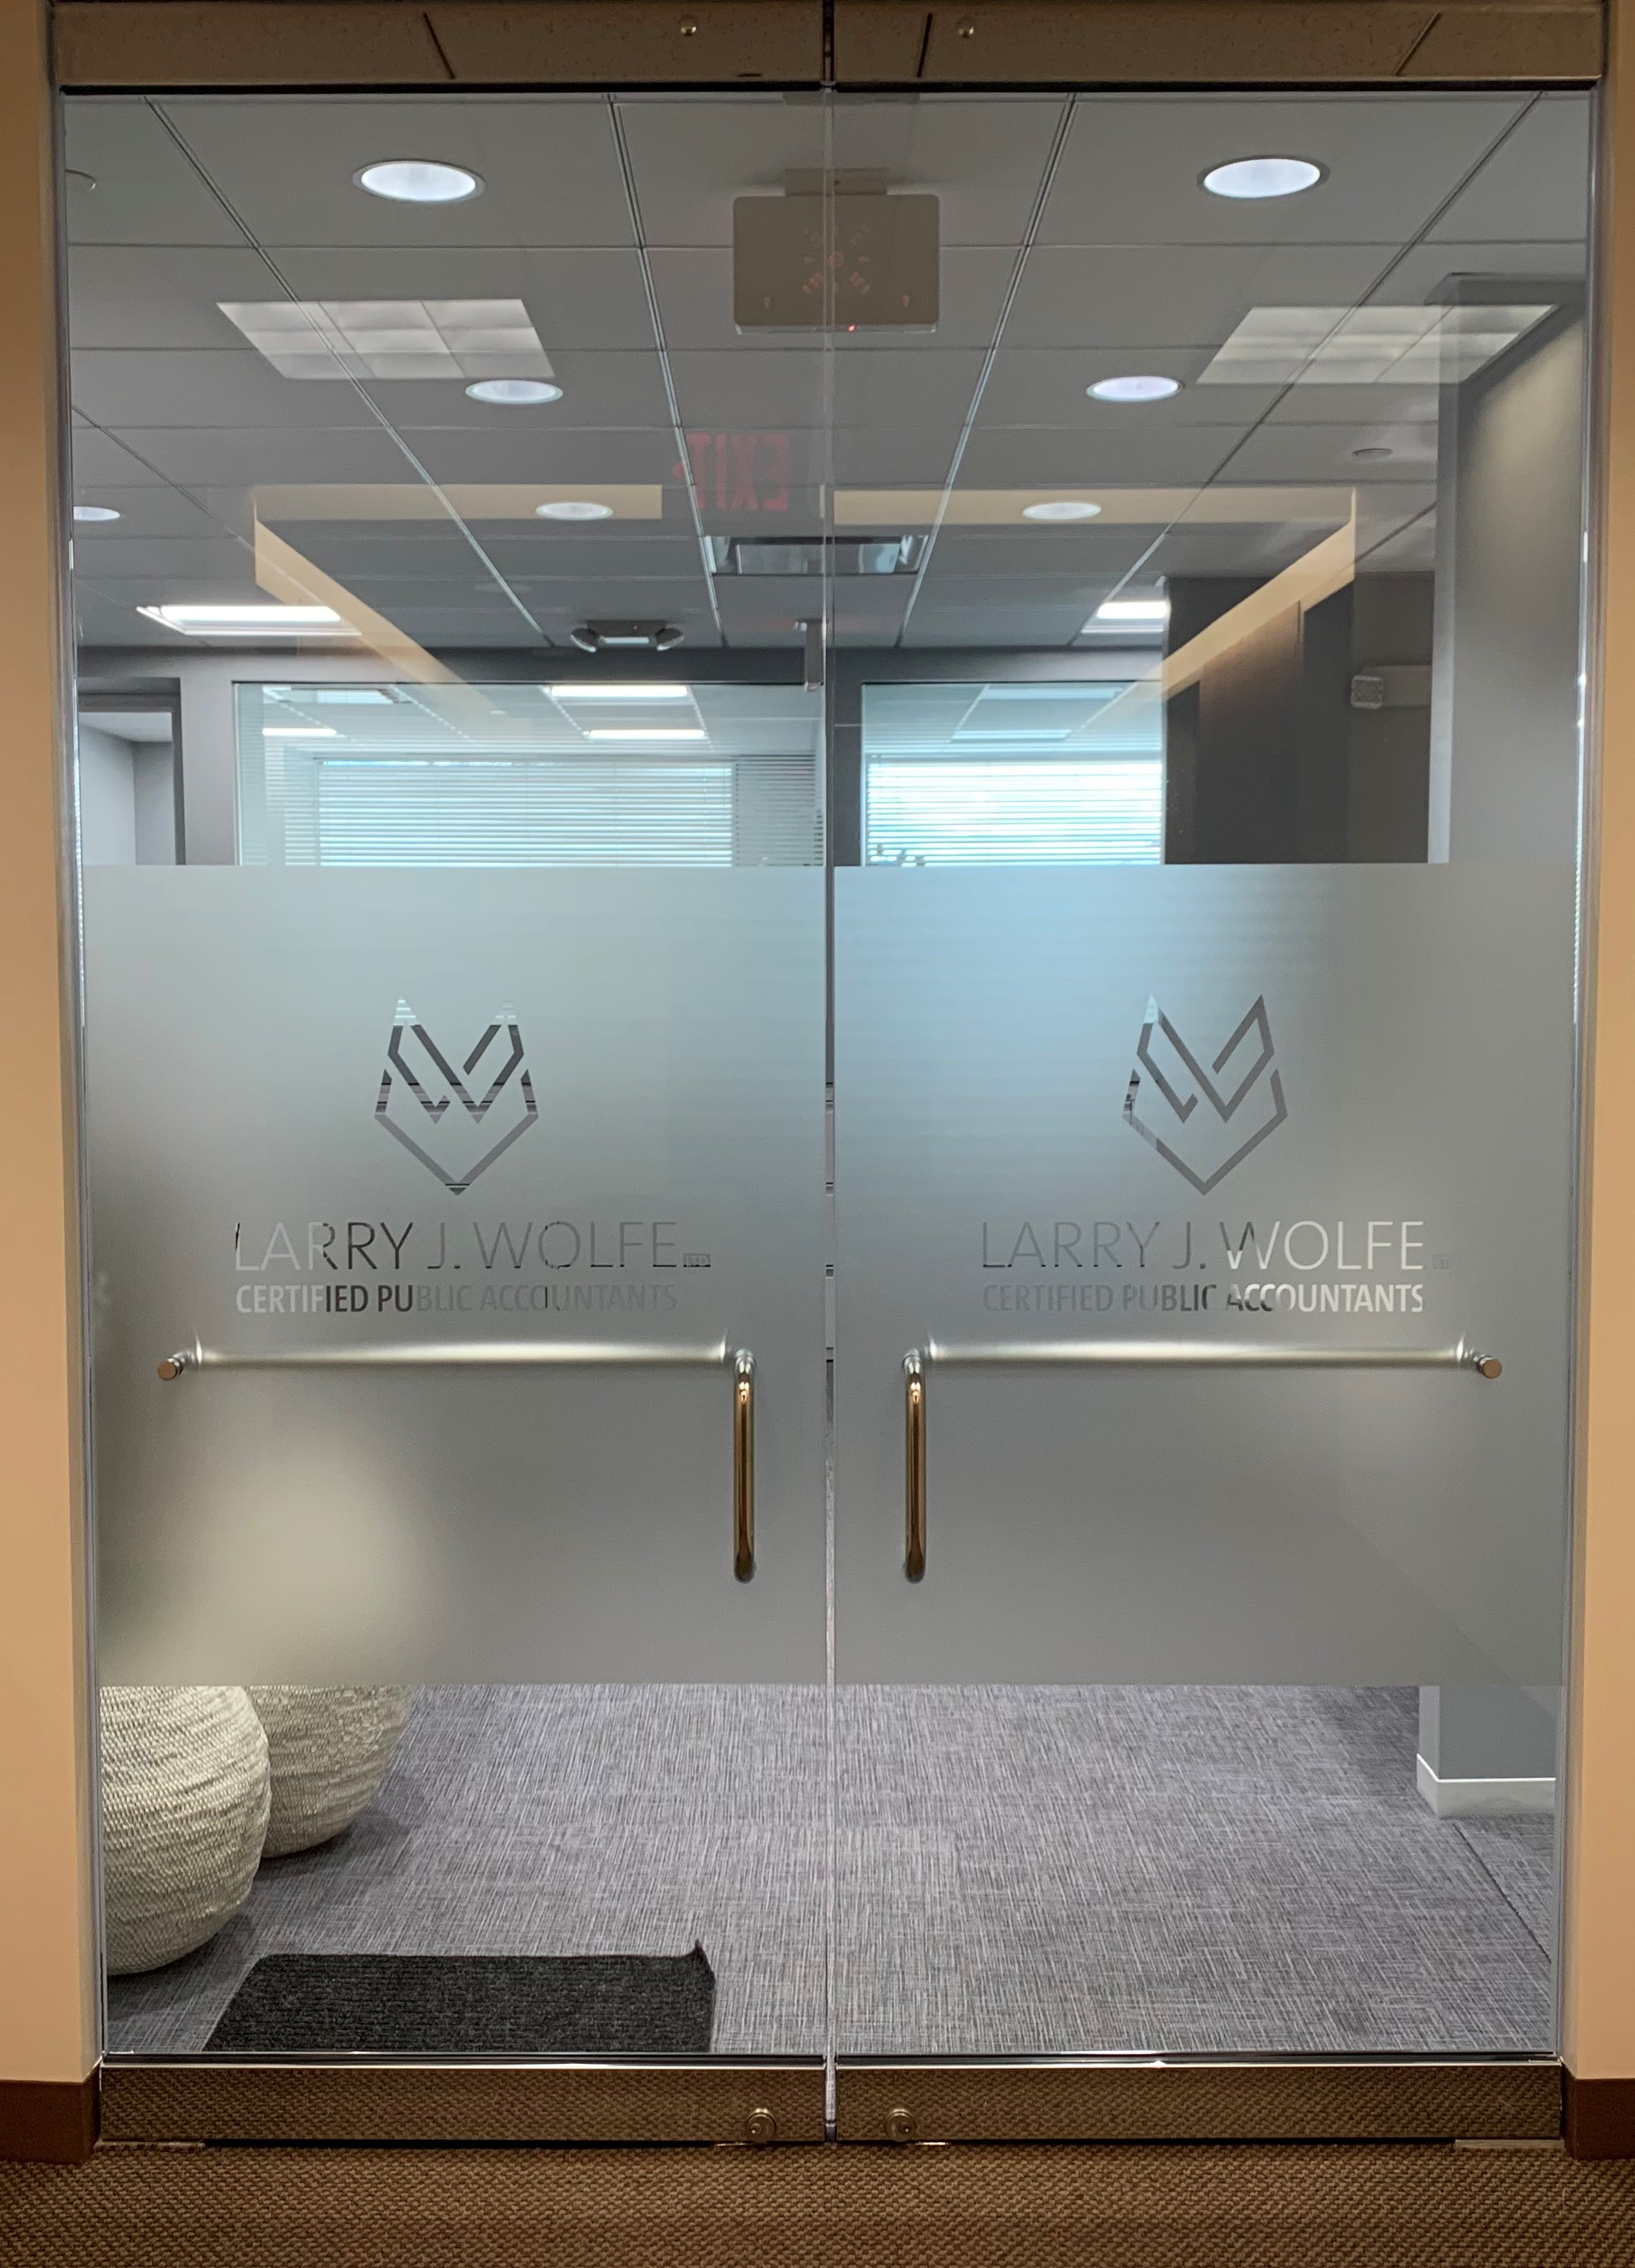 Frosted window graphics on office doors